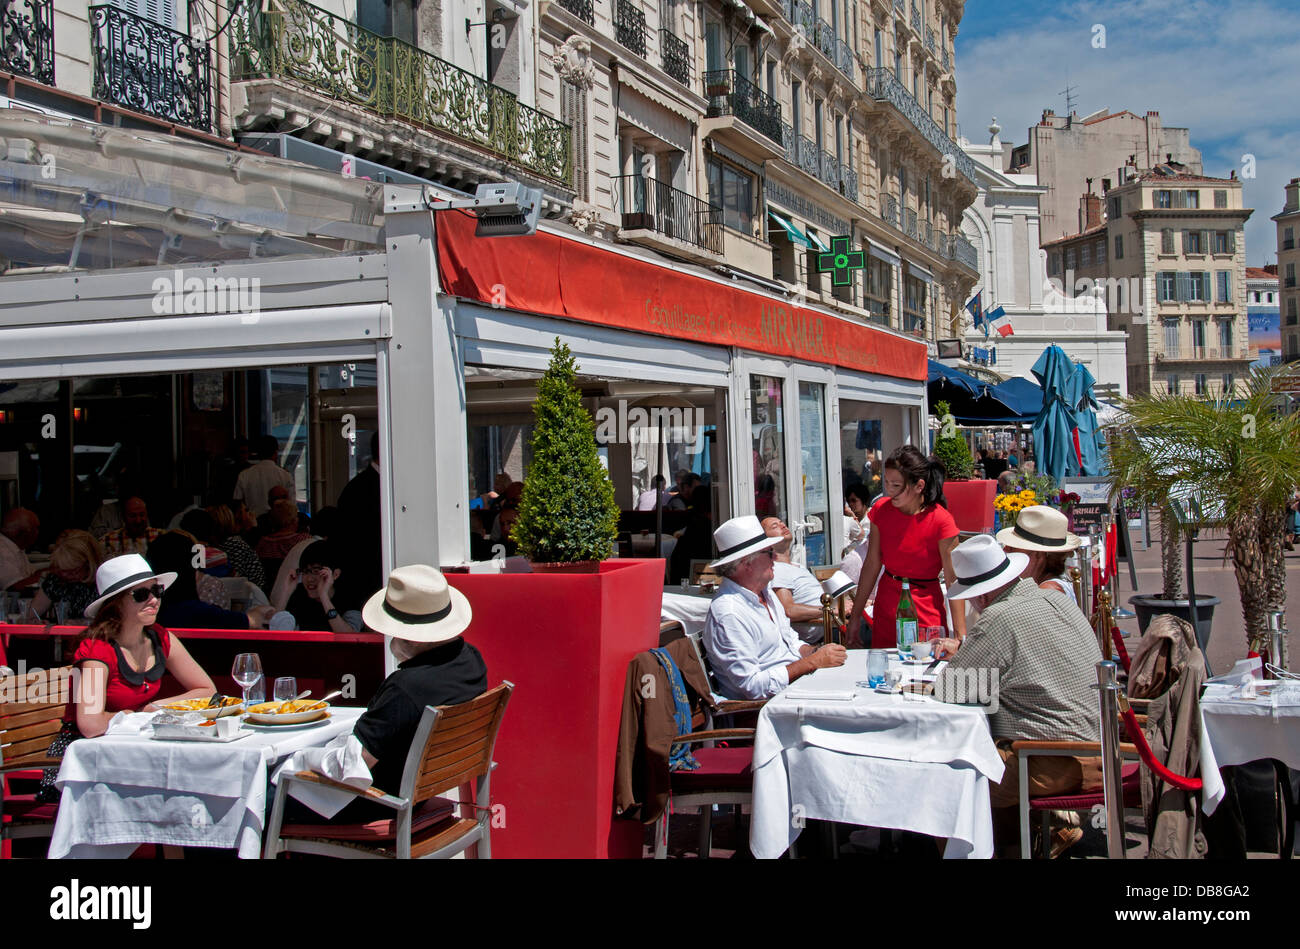 Miramar bouillabaisse fish soup restaurant cafe bar pub marseilles stock photo royalty free - Bouillabaisse marseille vieux port ...